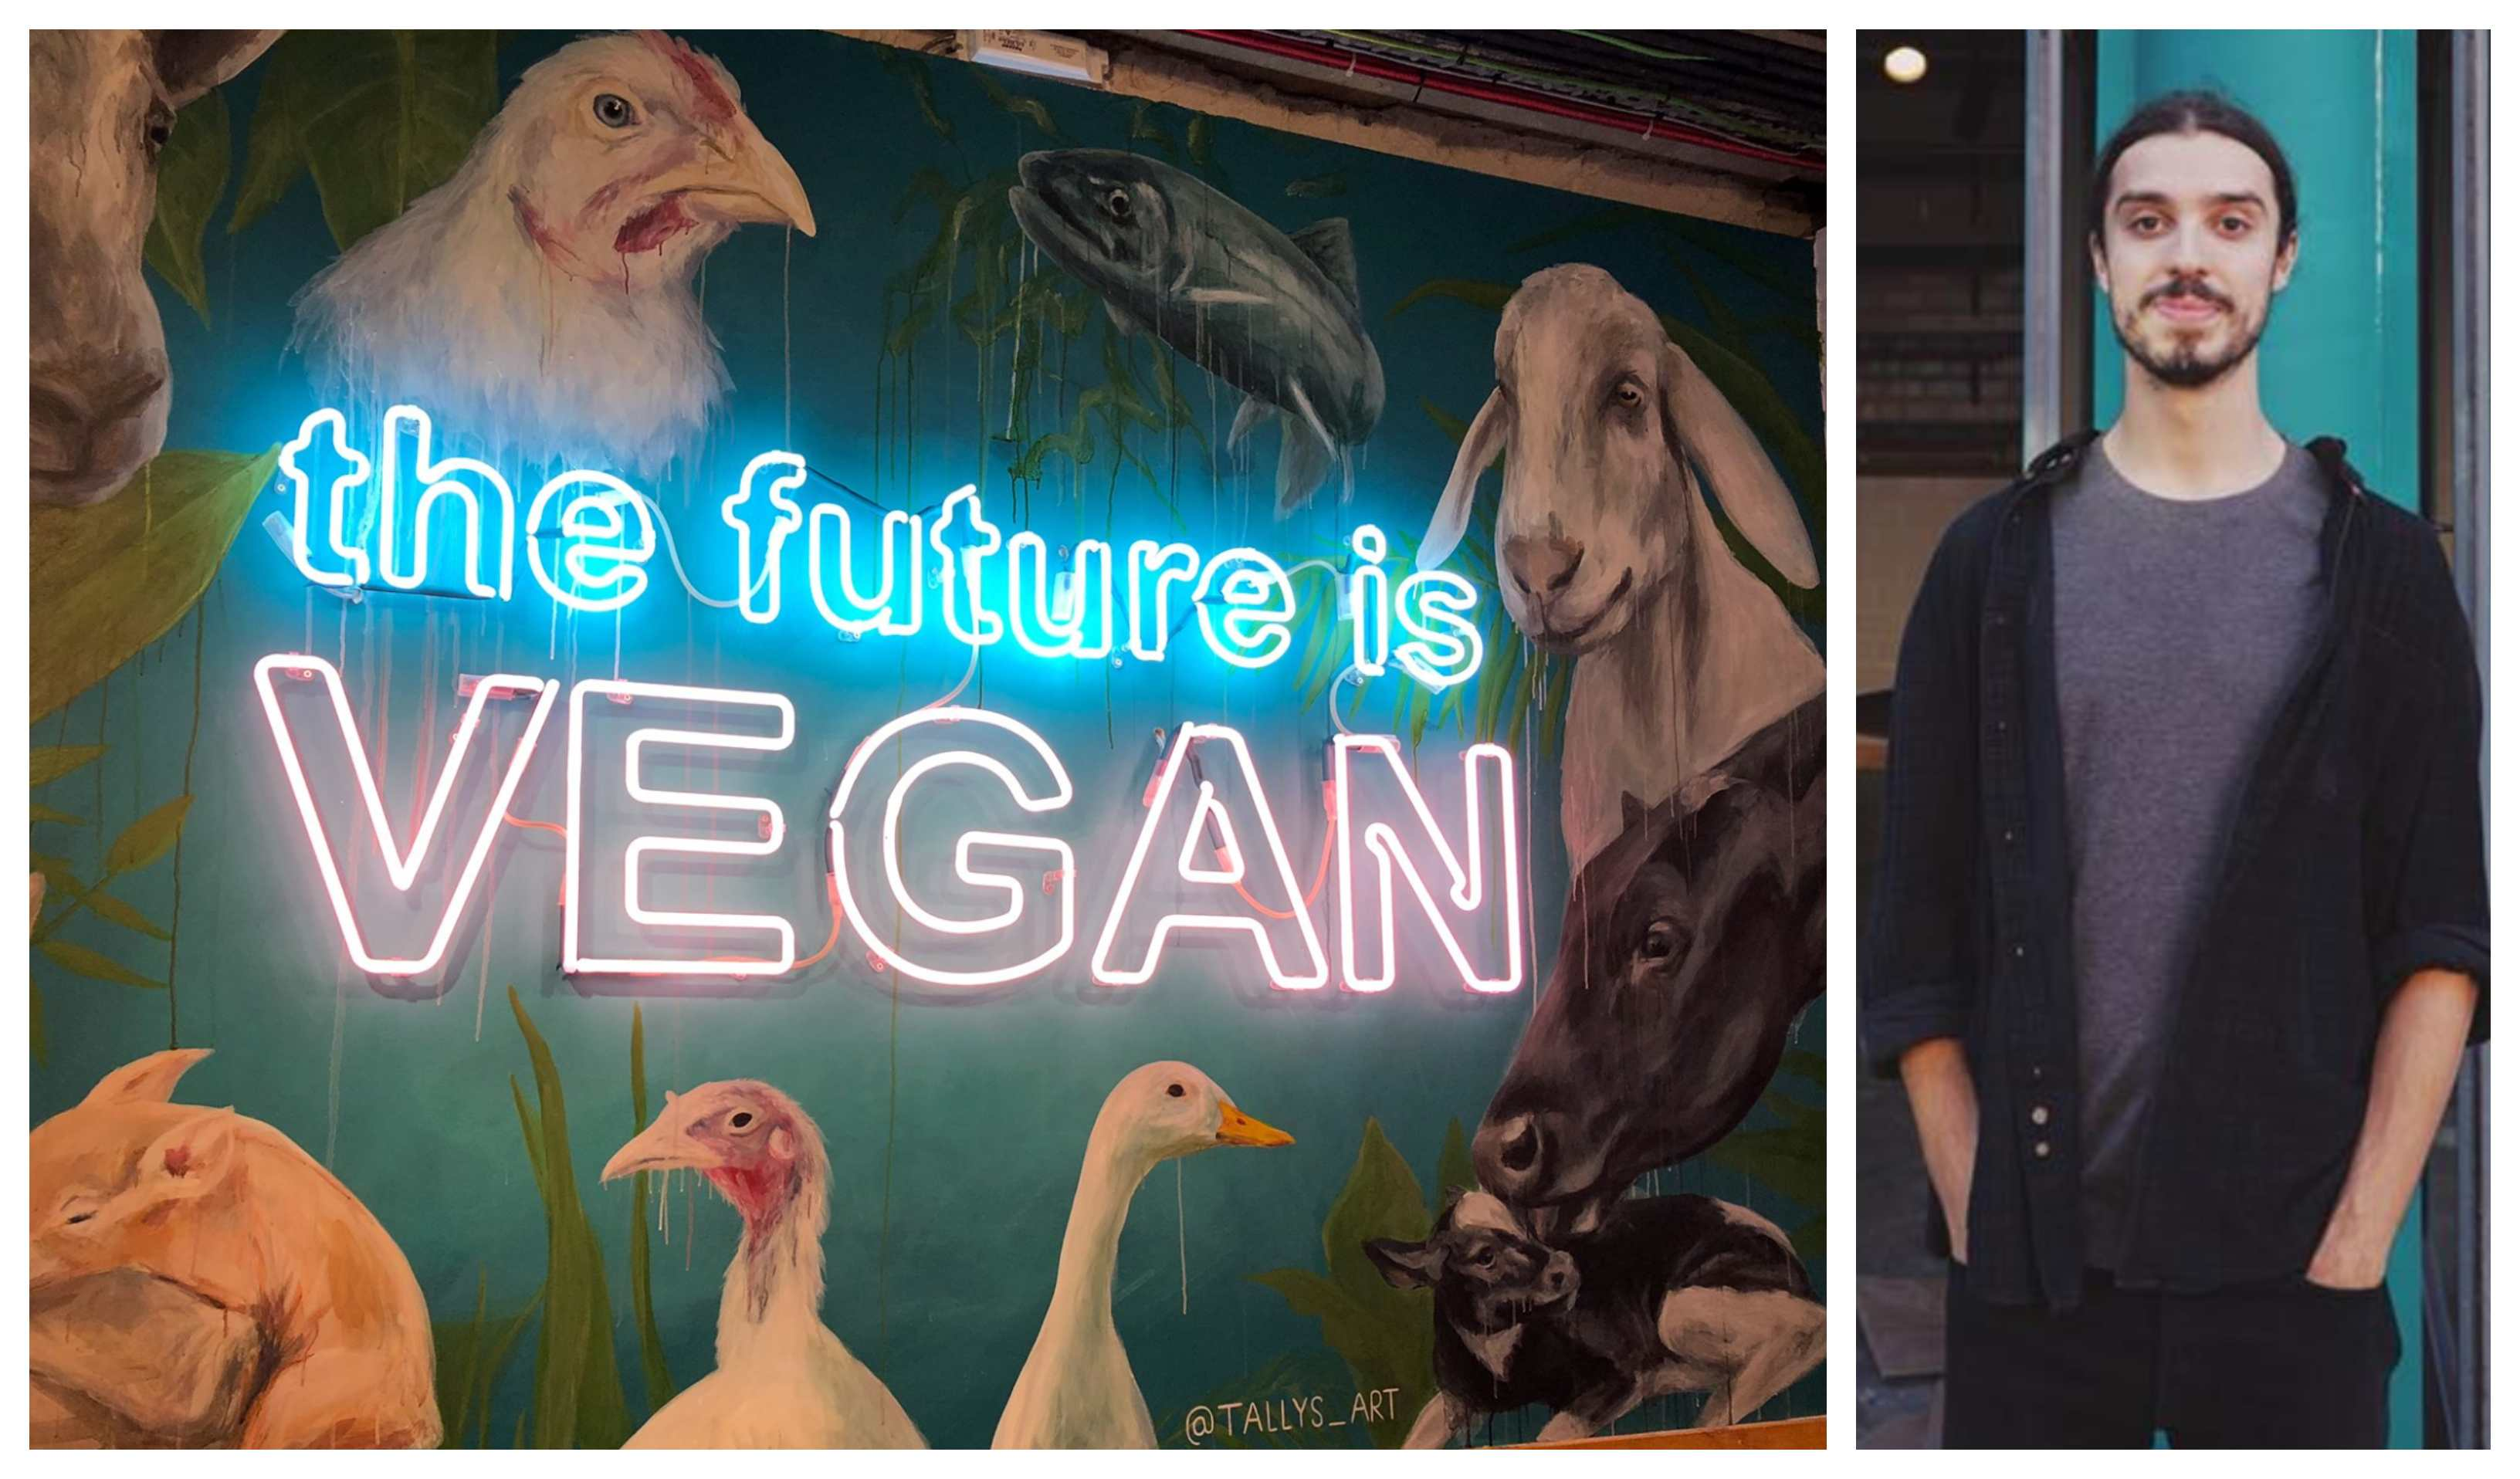 The future is vegan mural in Earthling's Ed's Unity diner